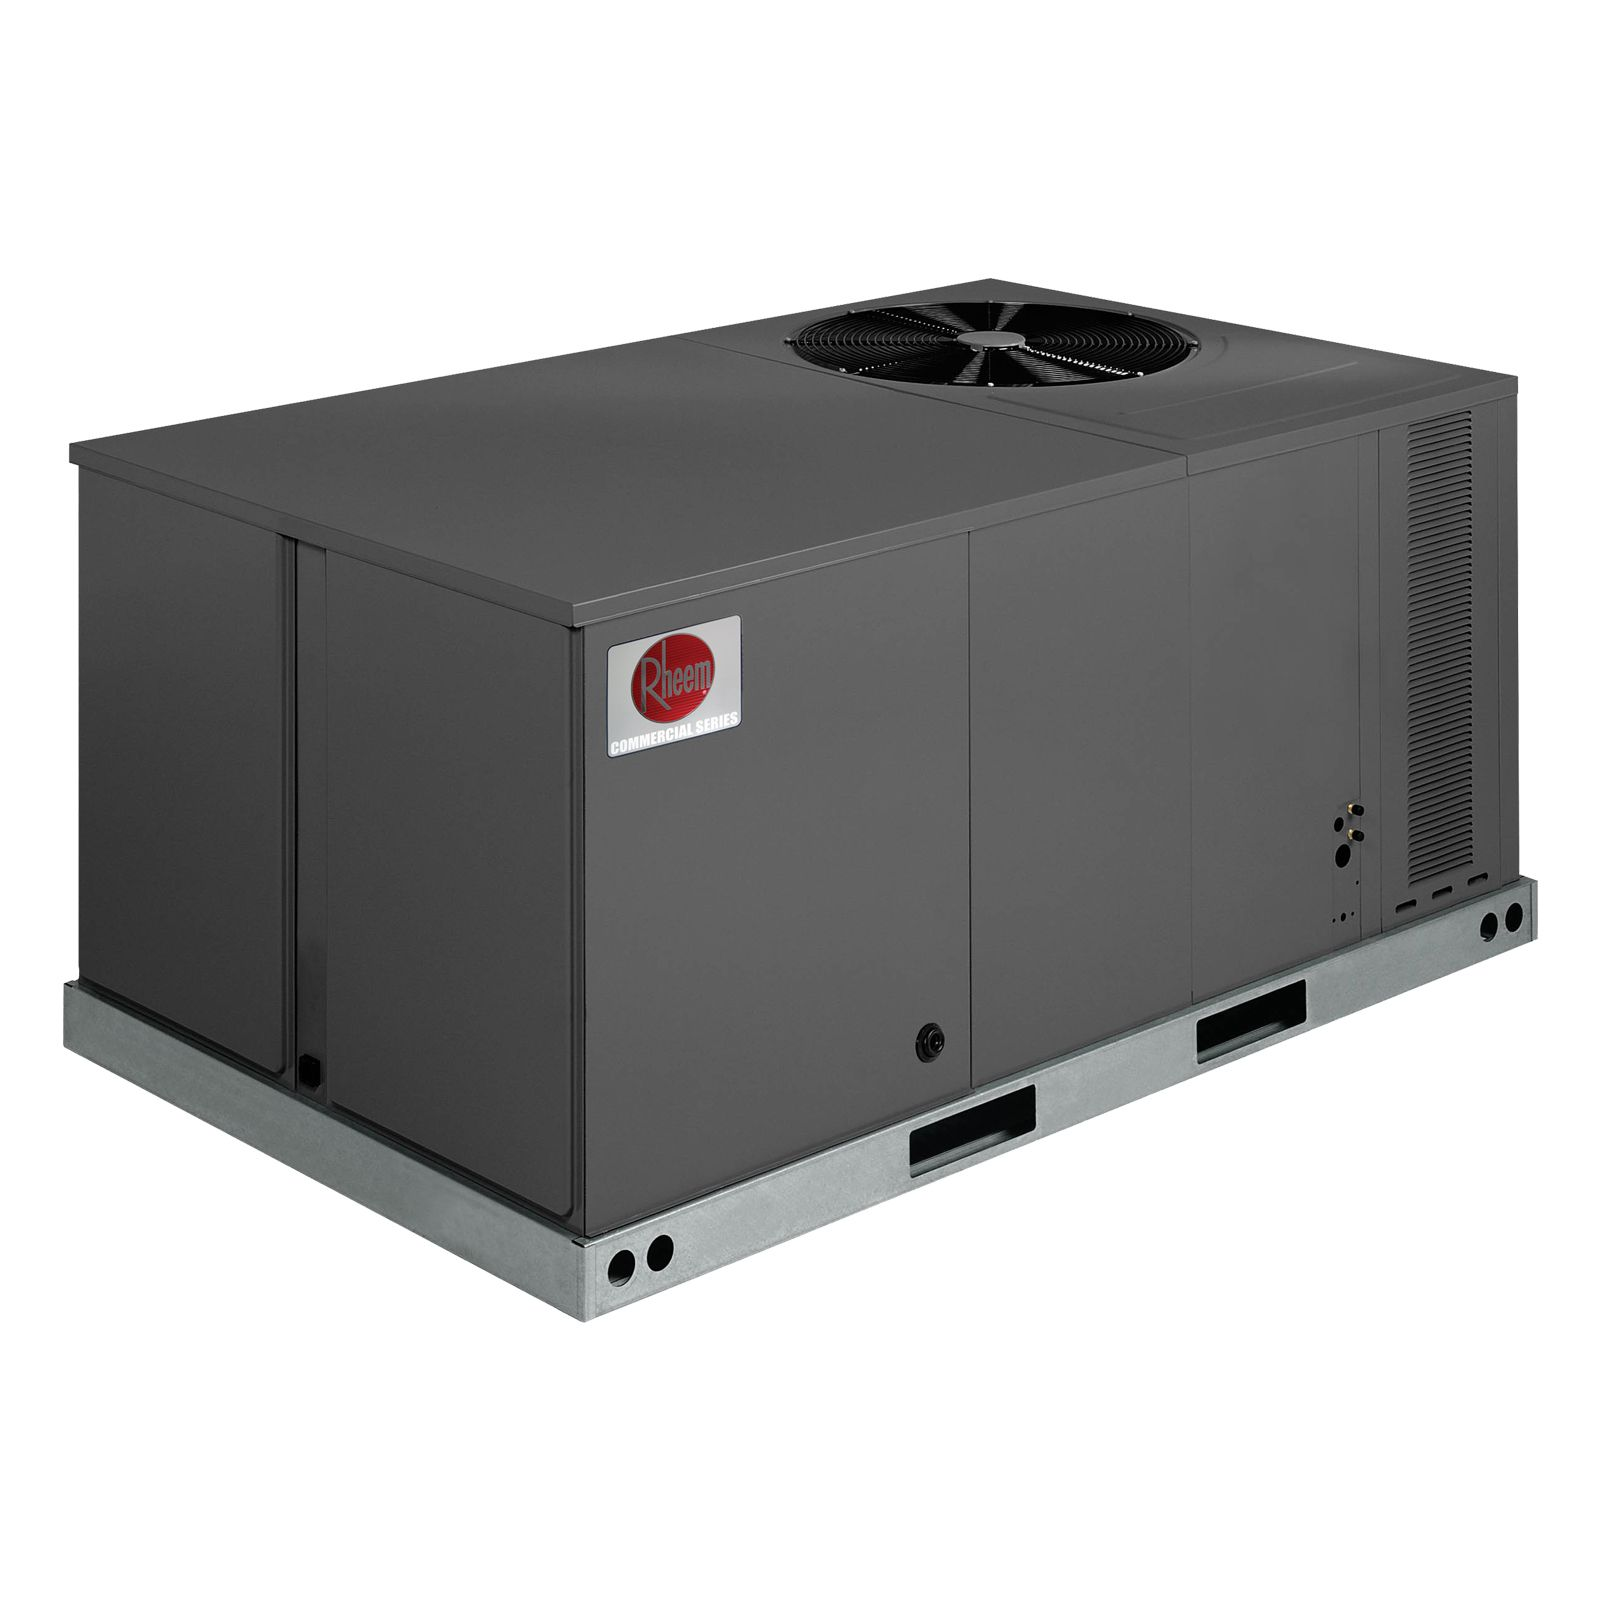 Rheem RLPN-A036JK000 - Commercial Classic 3 Ton 14 SEER Package Air Conditioner, 208-230 Volt, 1 Phase, 60 Hz, R410A